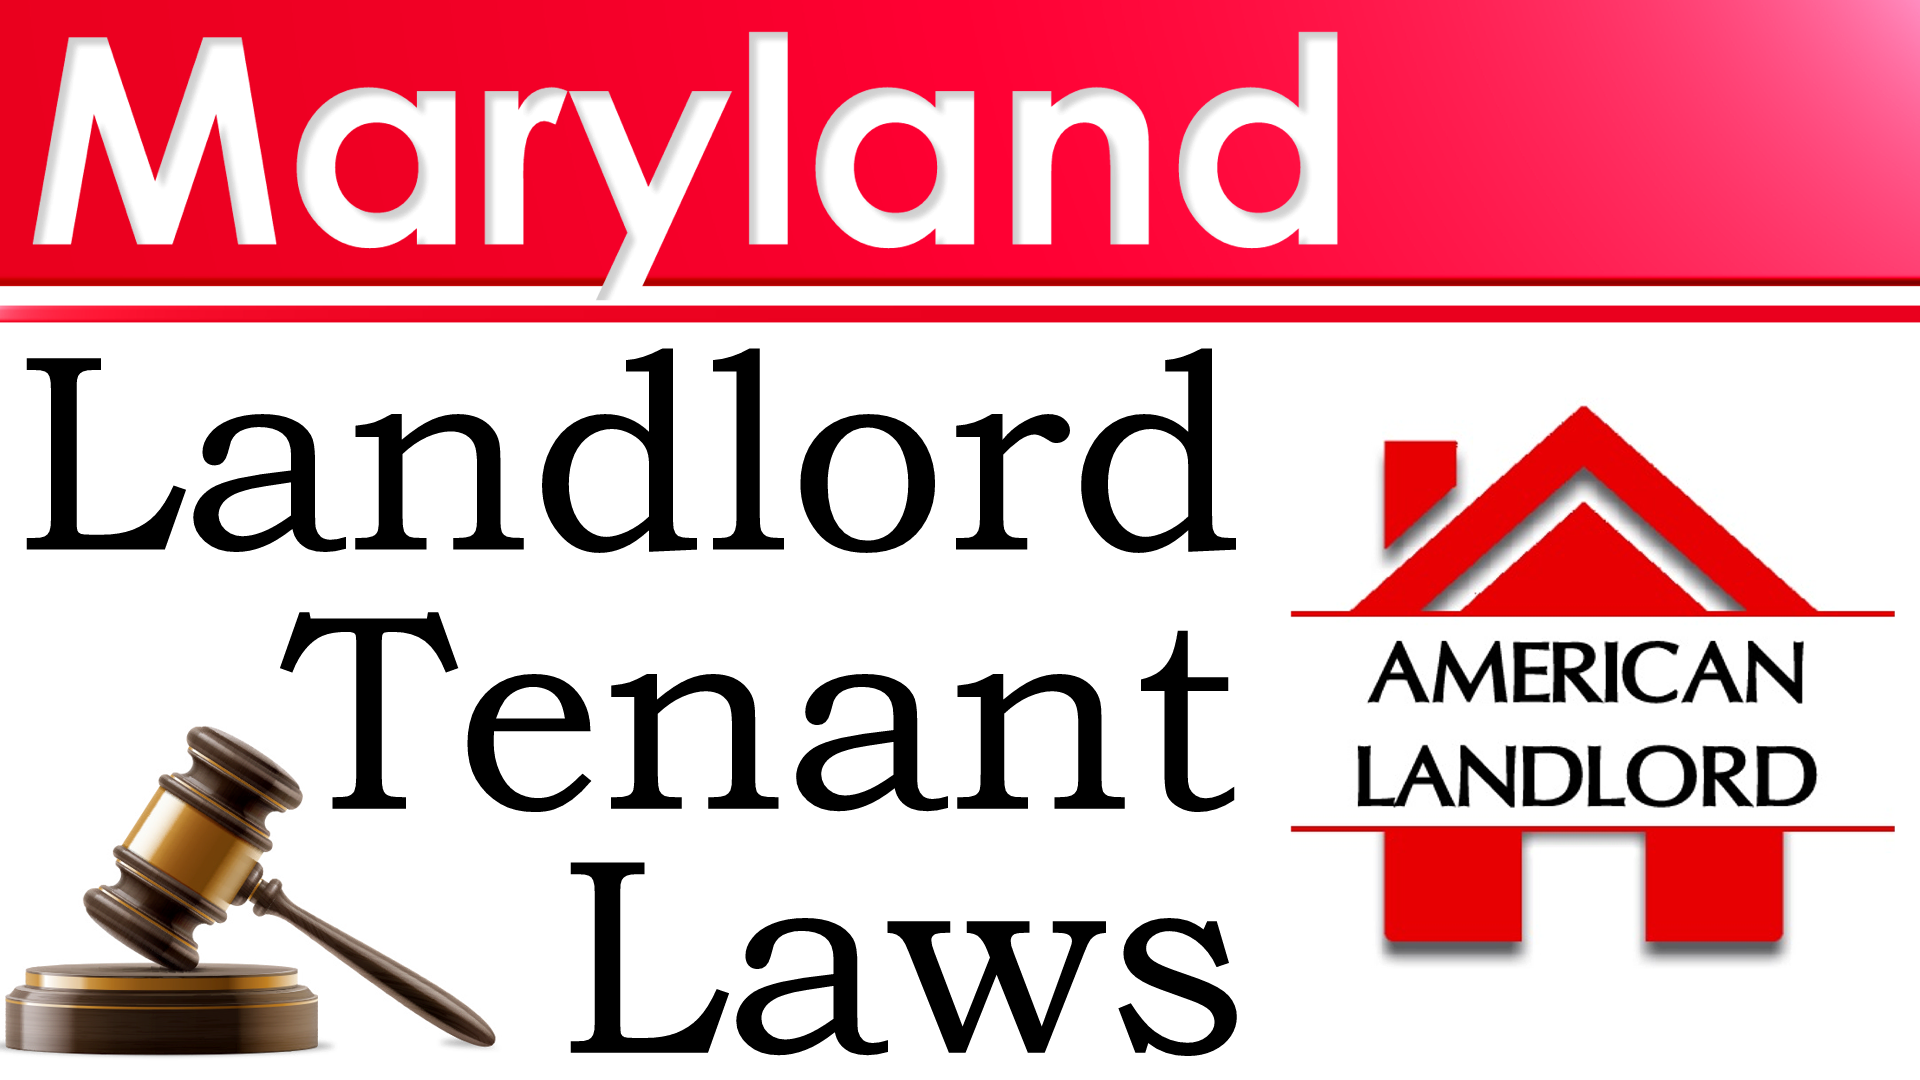 Maryland Landlord Tenant Law